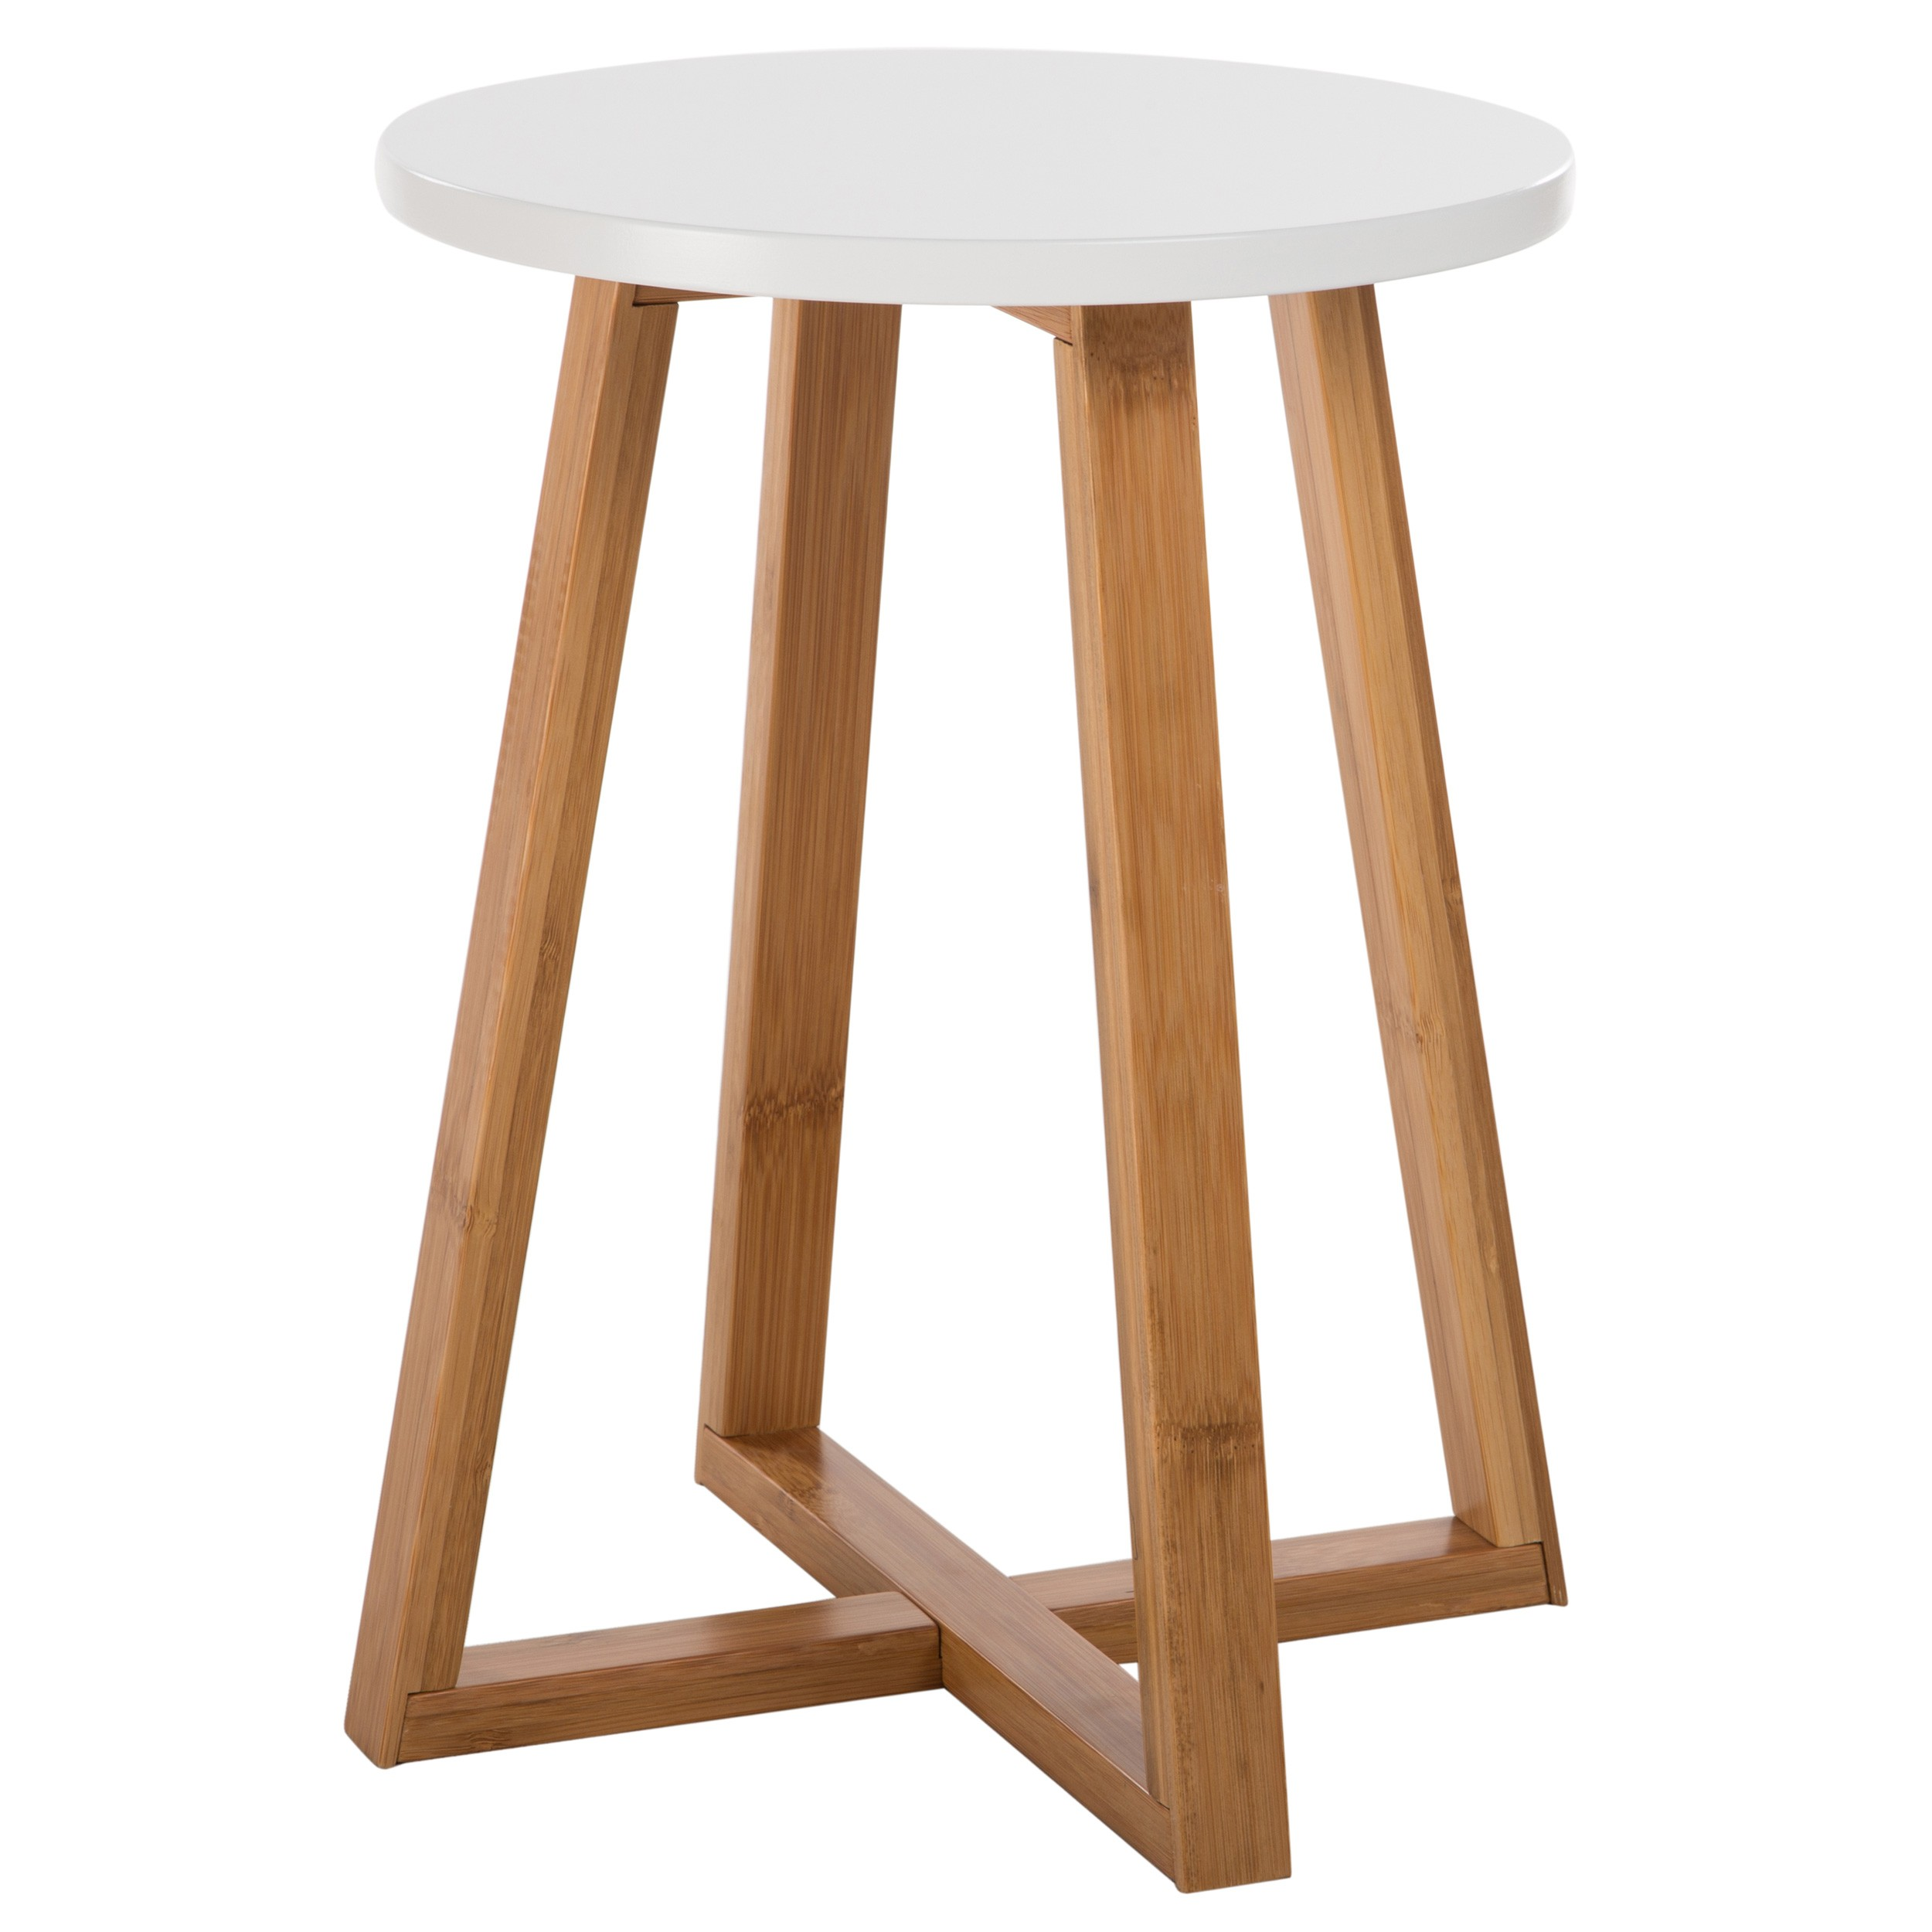 Table D Appoint Ronde Skandi Commandez Nos Tables D Appoint Rondes